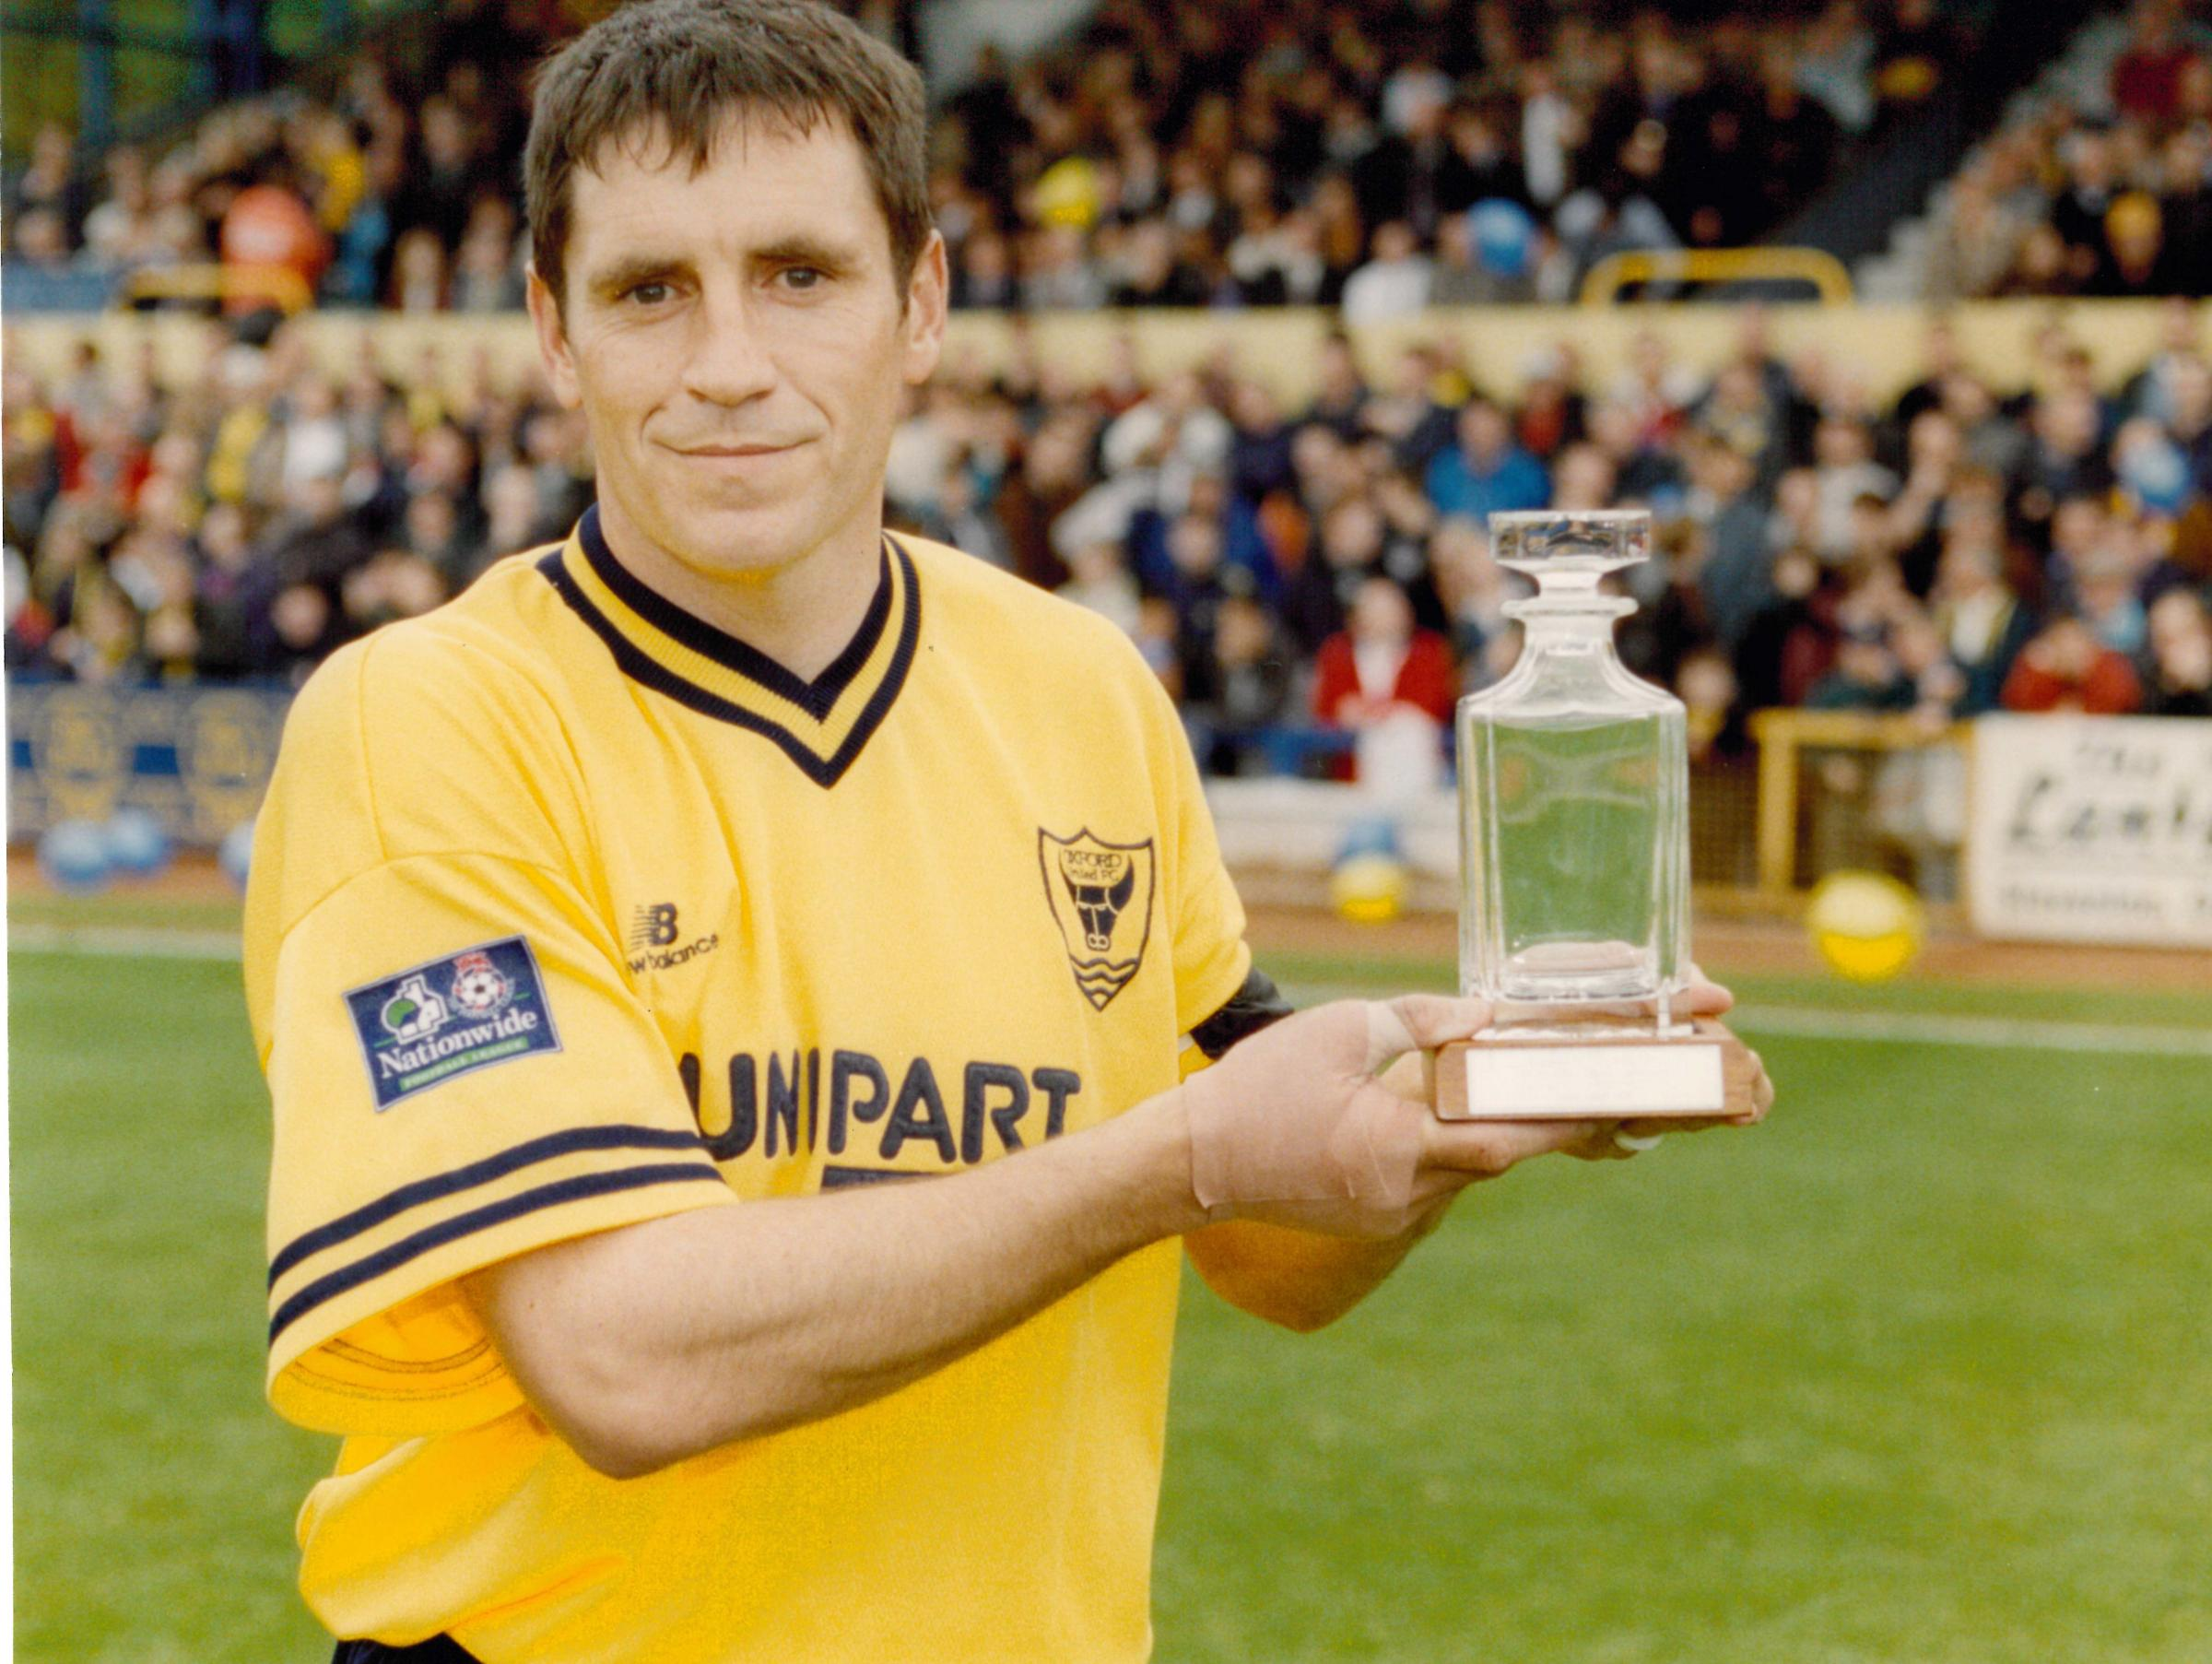 HONOURED: Les Robinson with a trophy presented for his 500th Oxford United league appearance in 1999